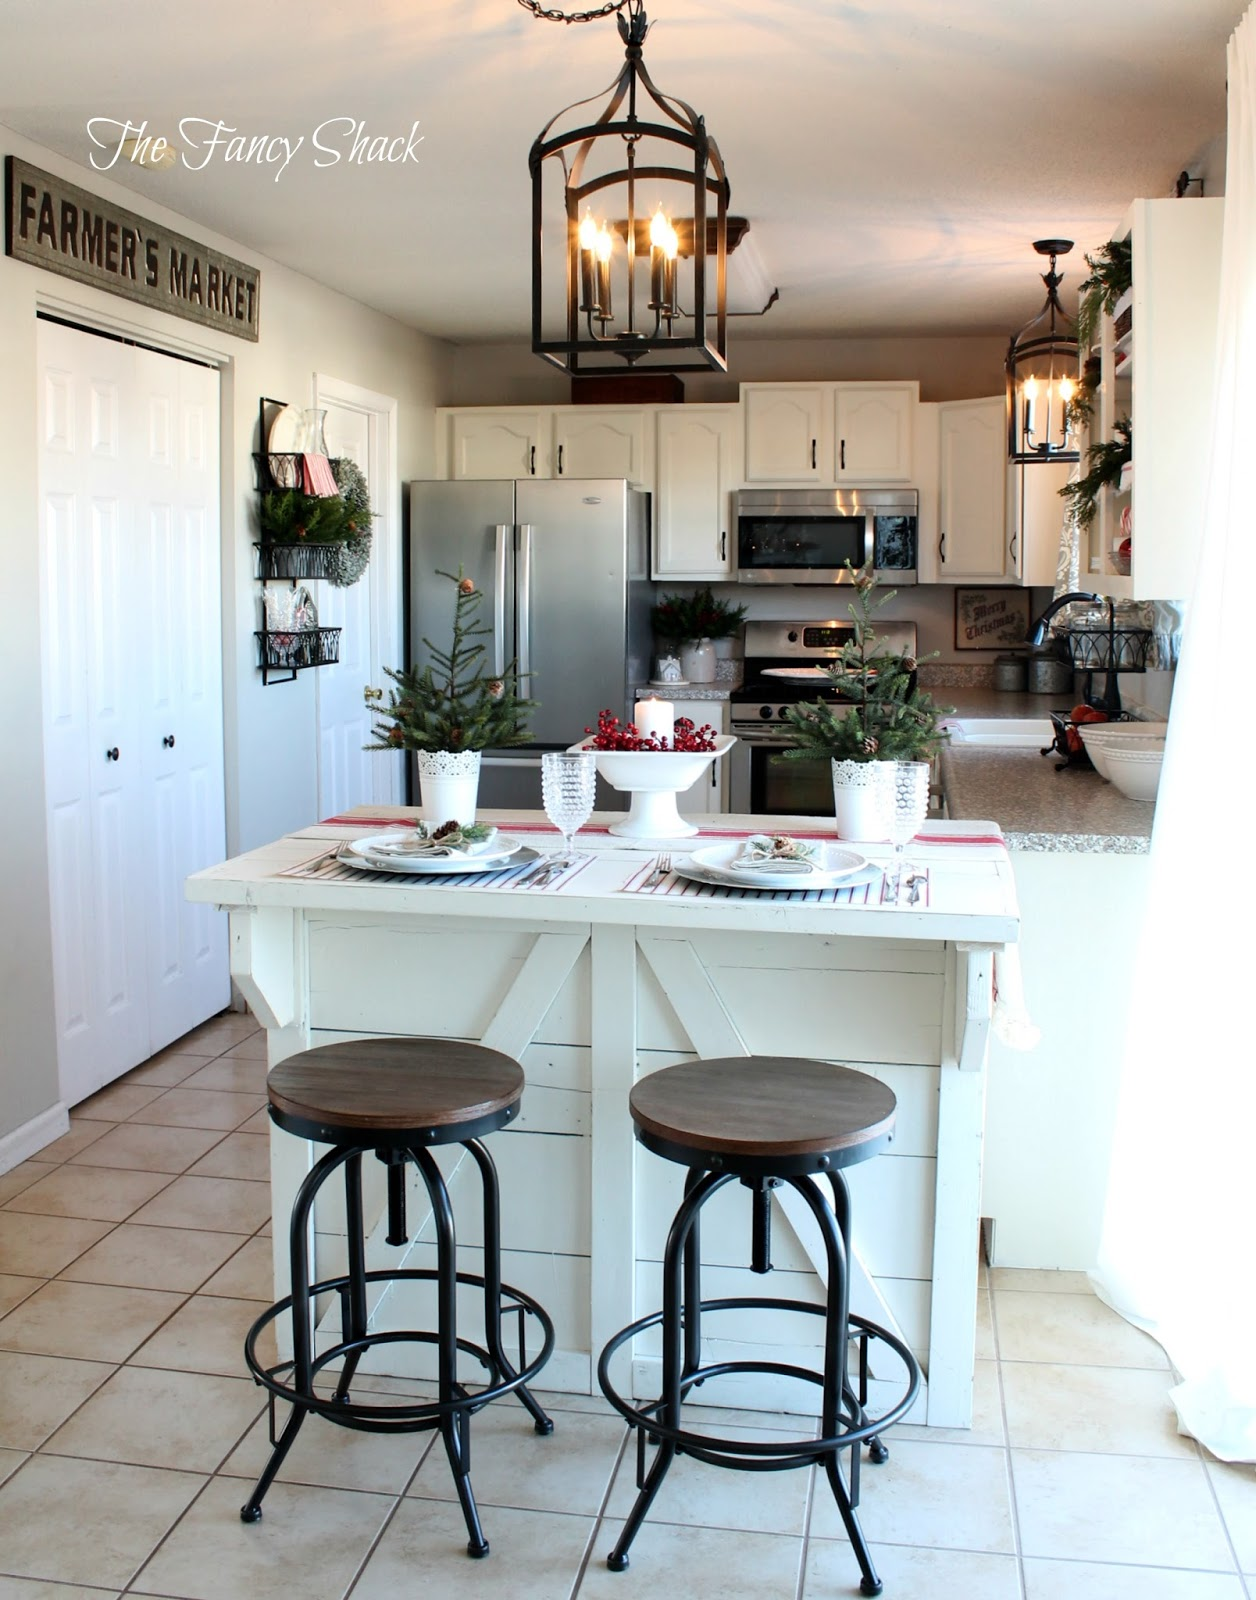 The Fancy Shack: Kitchen Makeover with Annie Sloan Chalk Paint